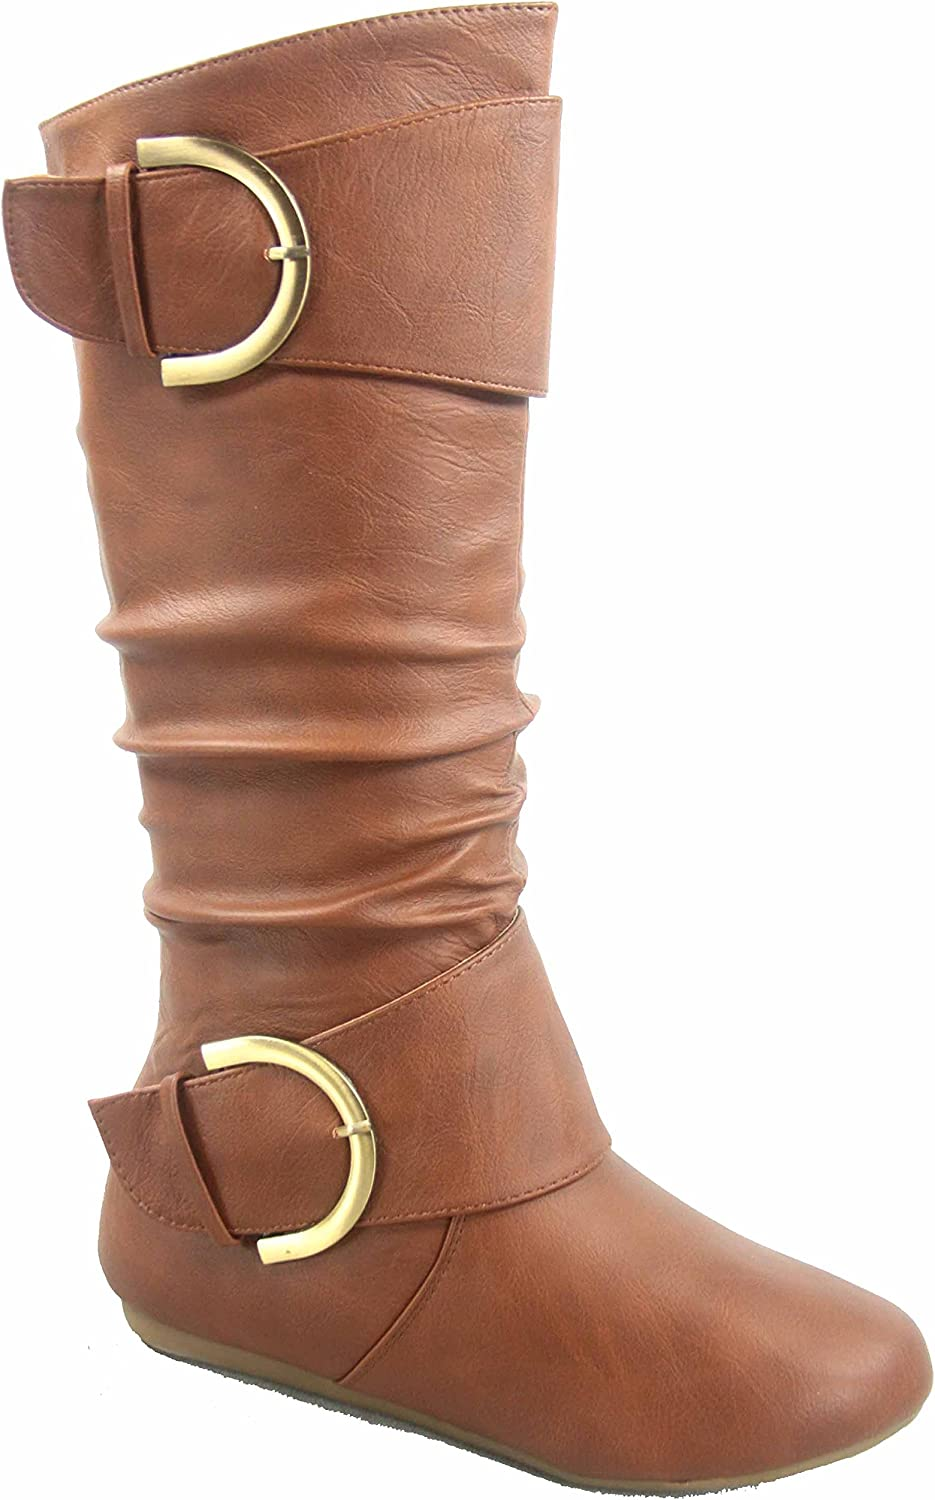 TOP Moda Bank-85 Women's Fashion Mid Calf Round Toe Slouch Comfort Casual Flat Boot